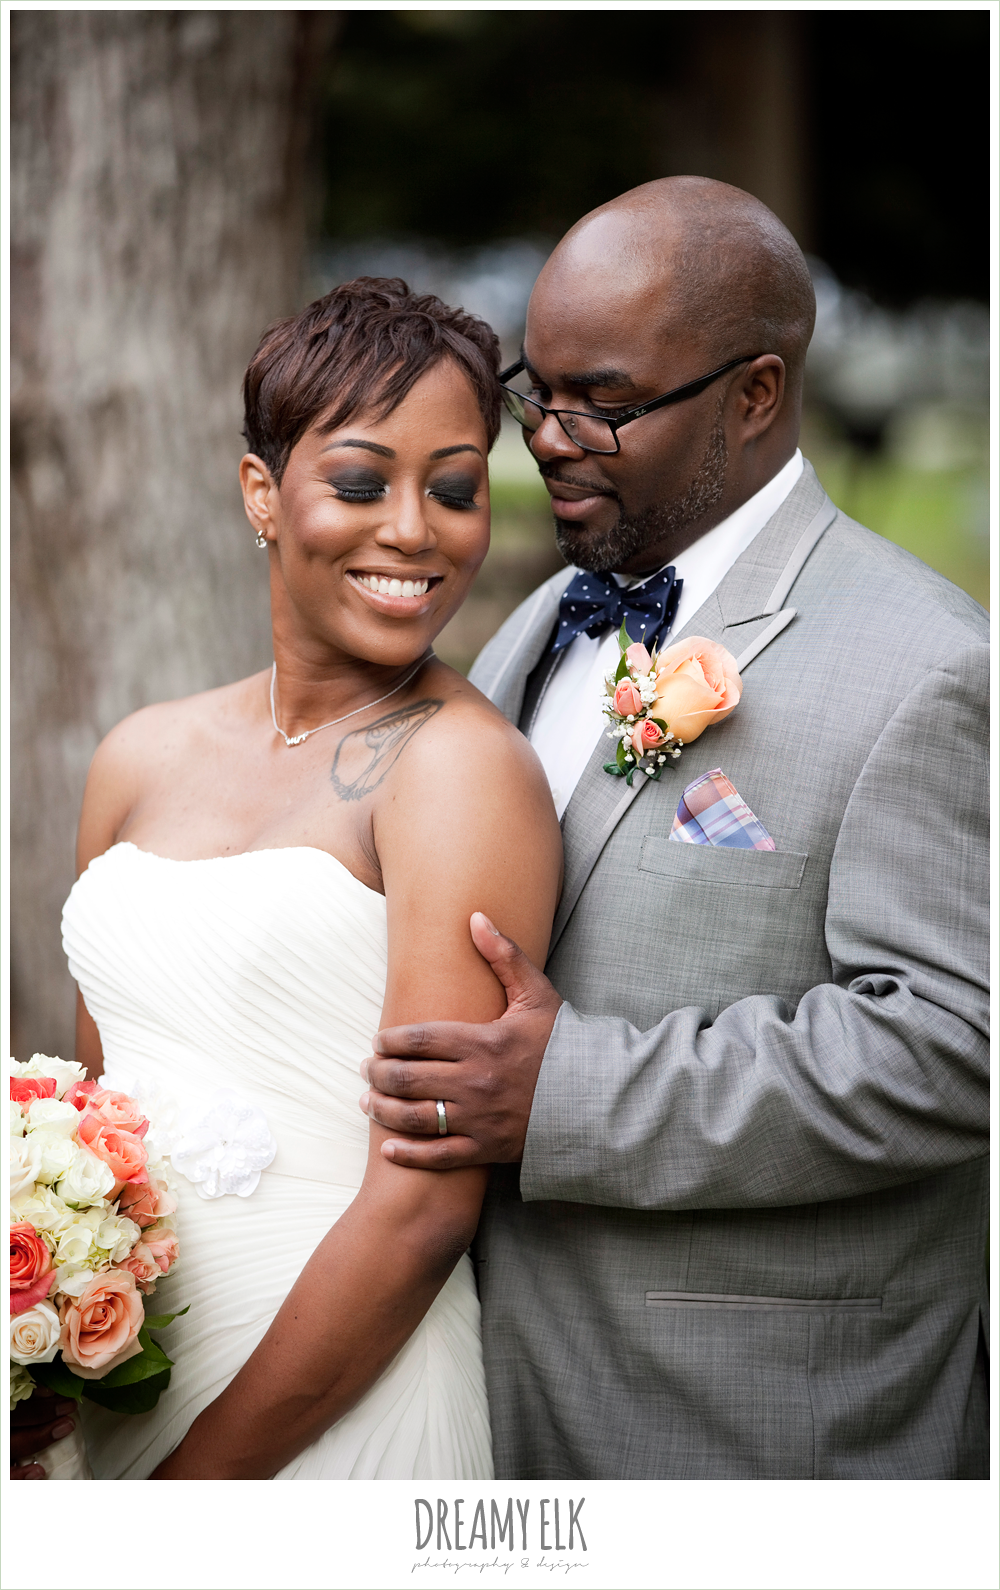 gray suit, strapless wedding dress, northwest forest conference center, dreamy elk photography and design